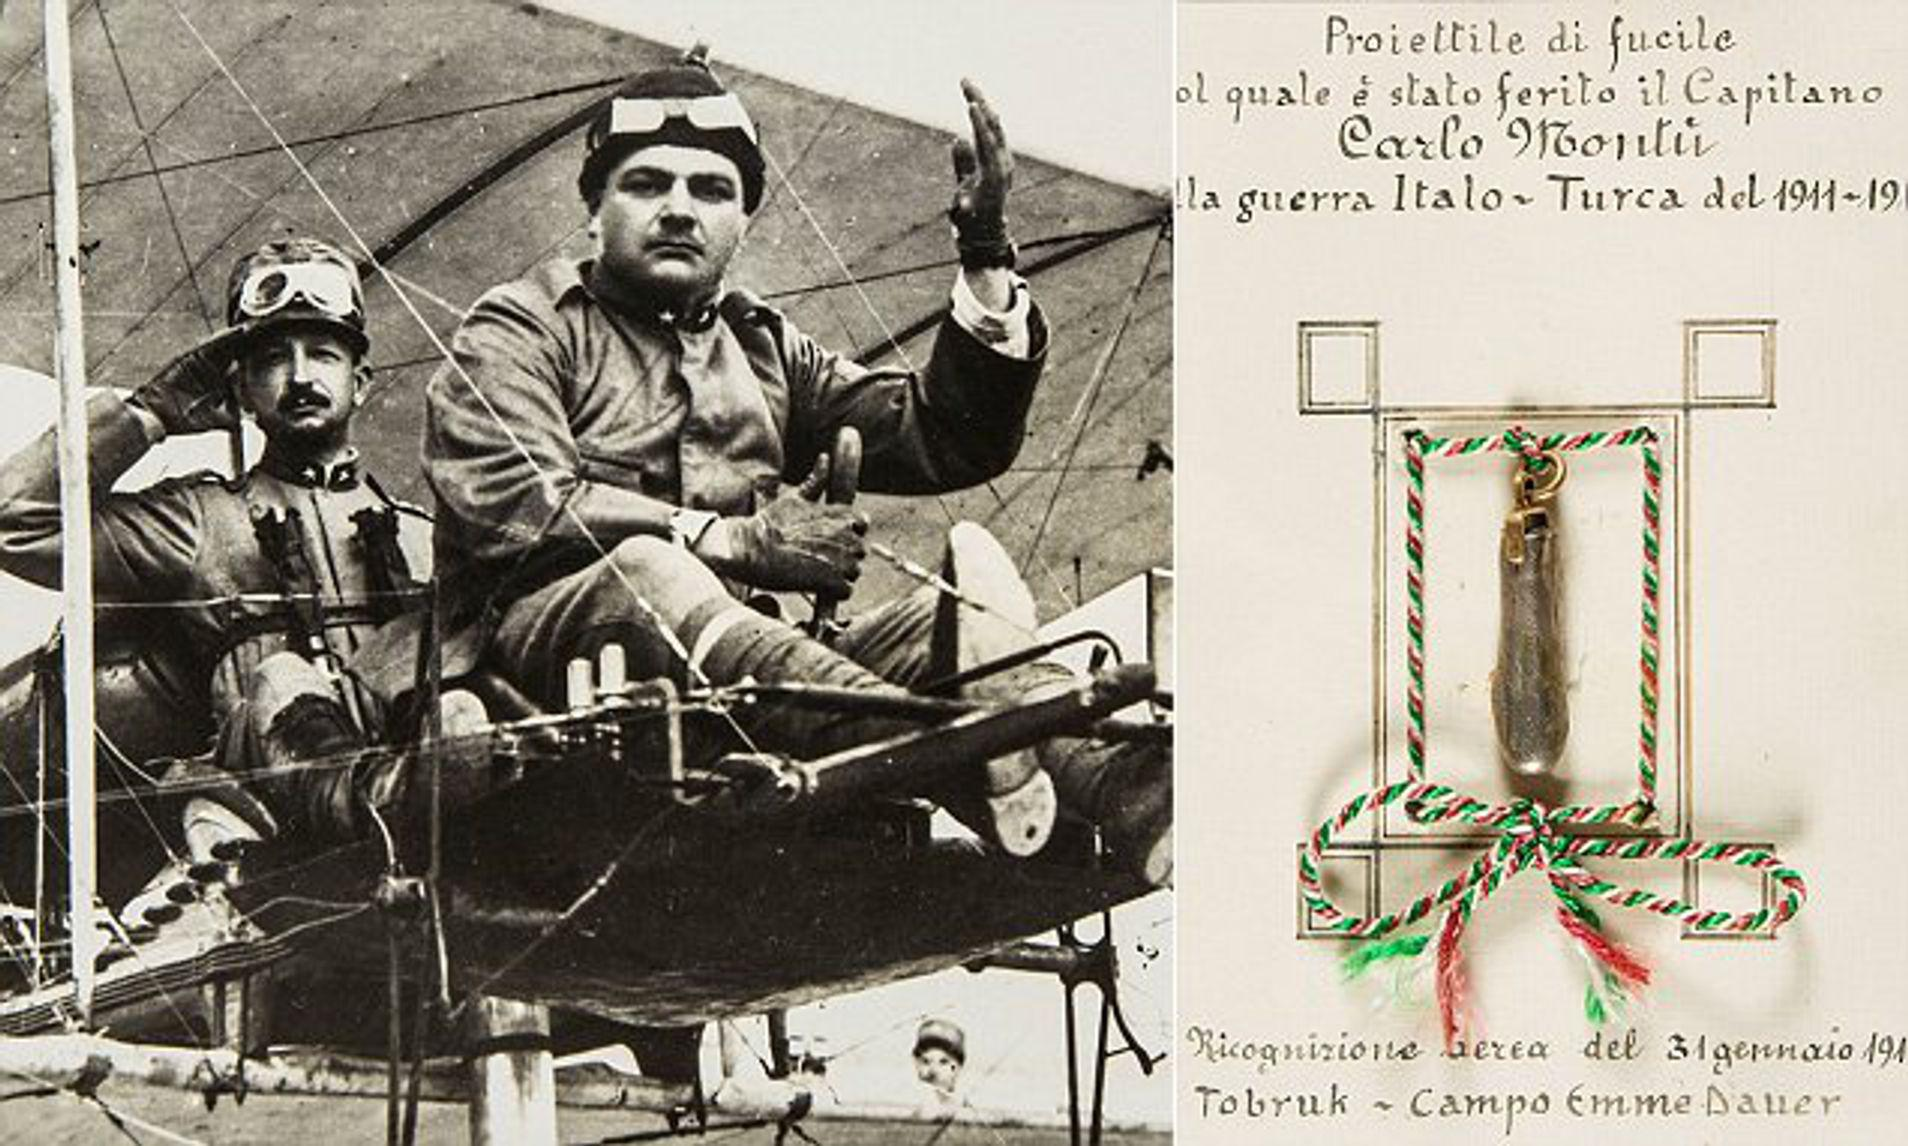 Captain Carlo Montu (front), the first pilot ever to be wounded in combat, he was shot and wounded near Tobruk, Libya during the Italian-Turkish War in 1912.jpg